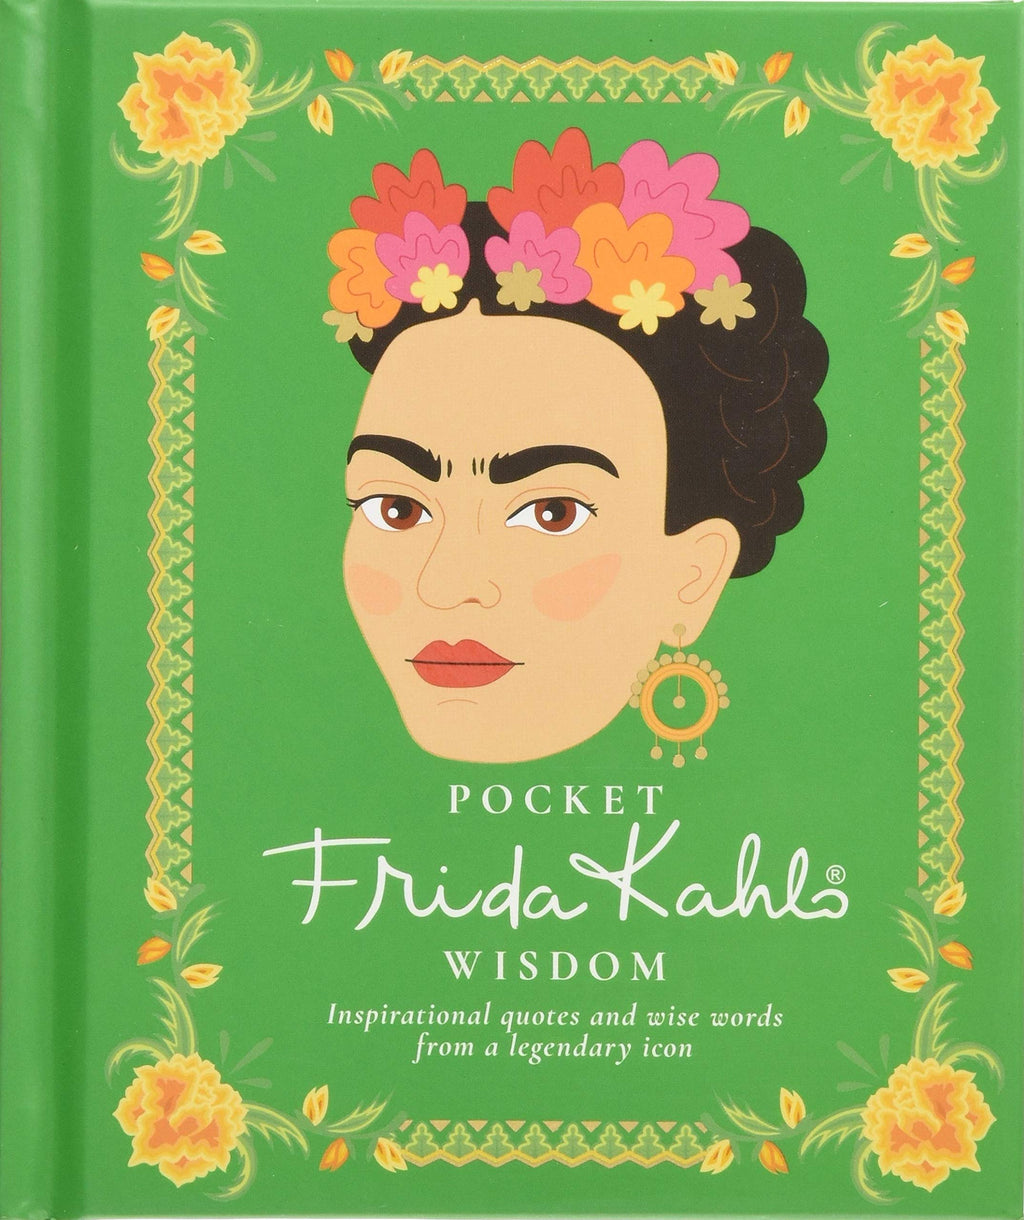 Pocket Frida Kahlo Wisdom by Hardie Grant